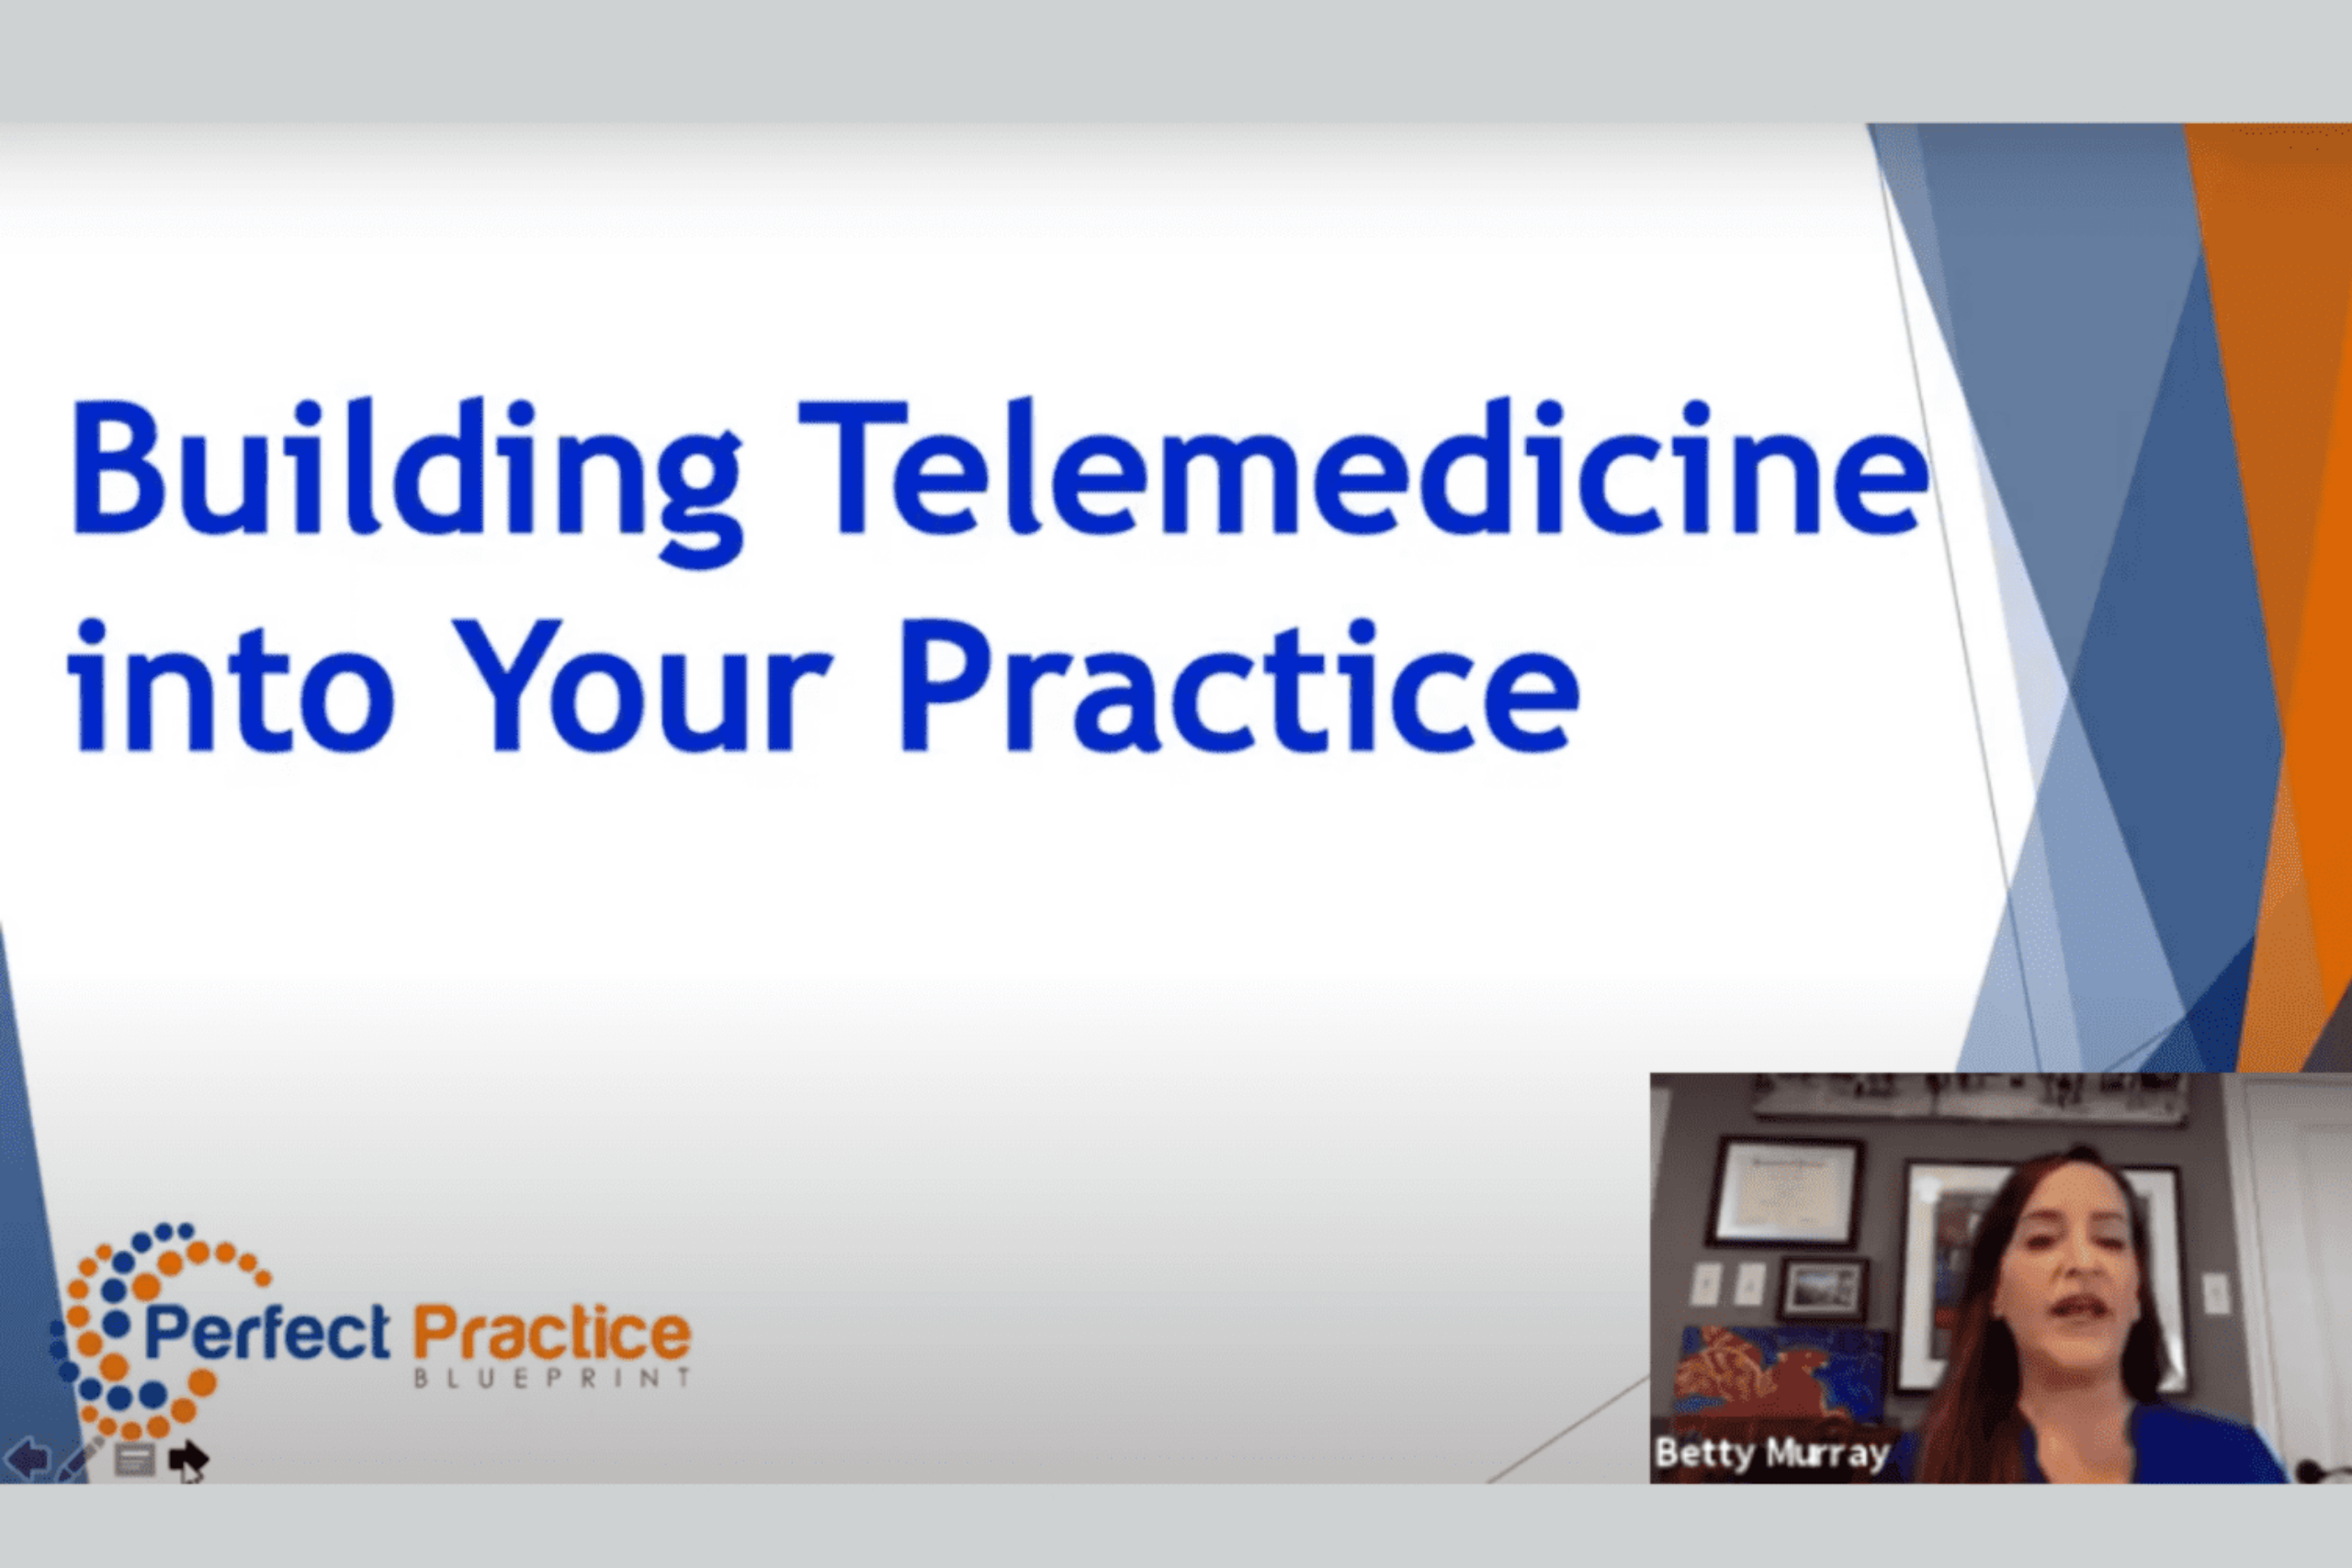 Perfect Practice Telemedicine Program - What You Need to Know